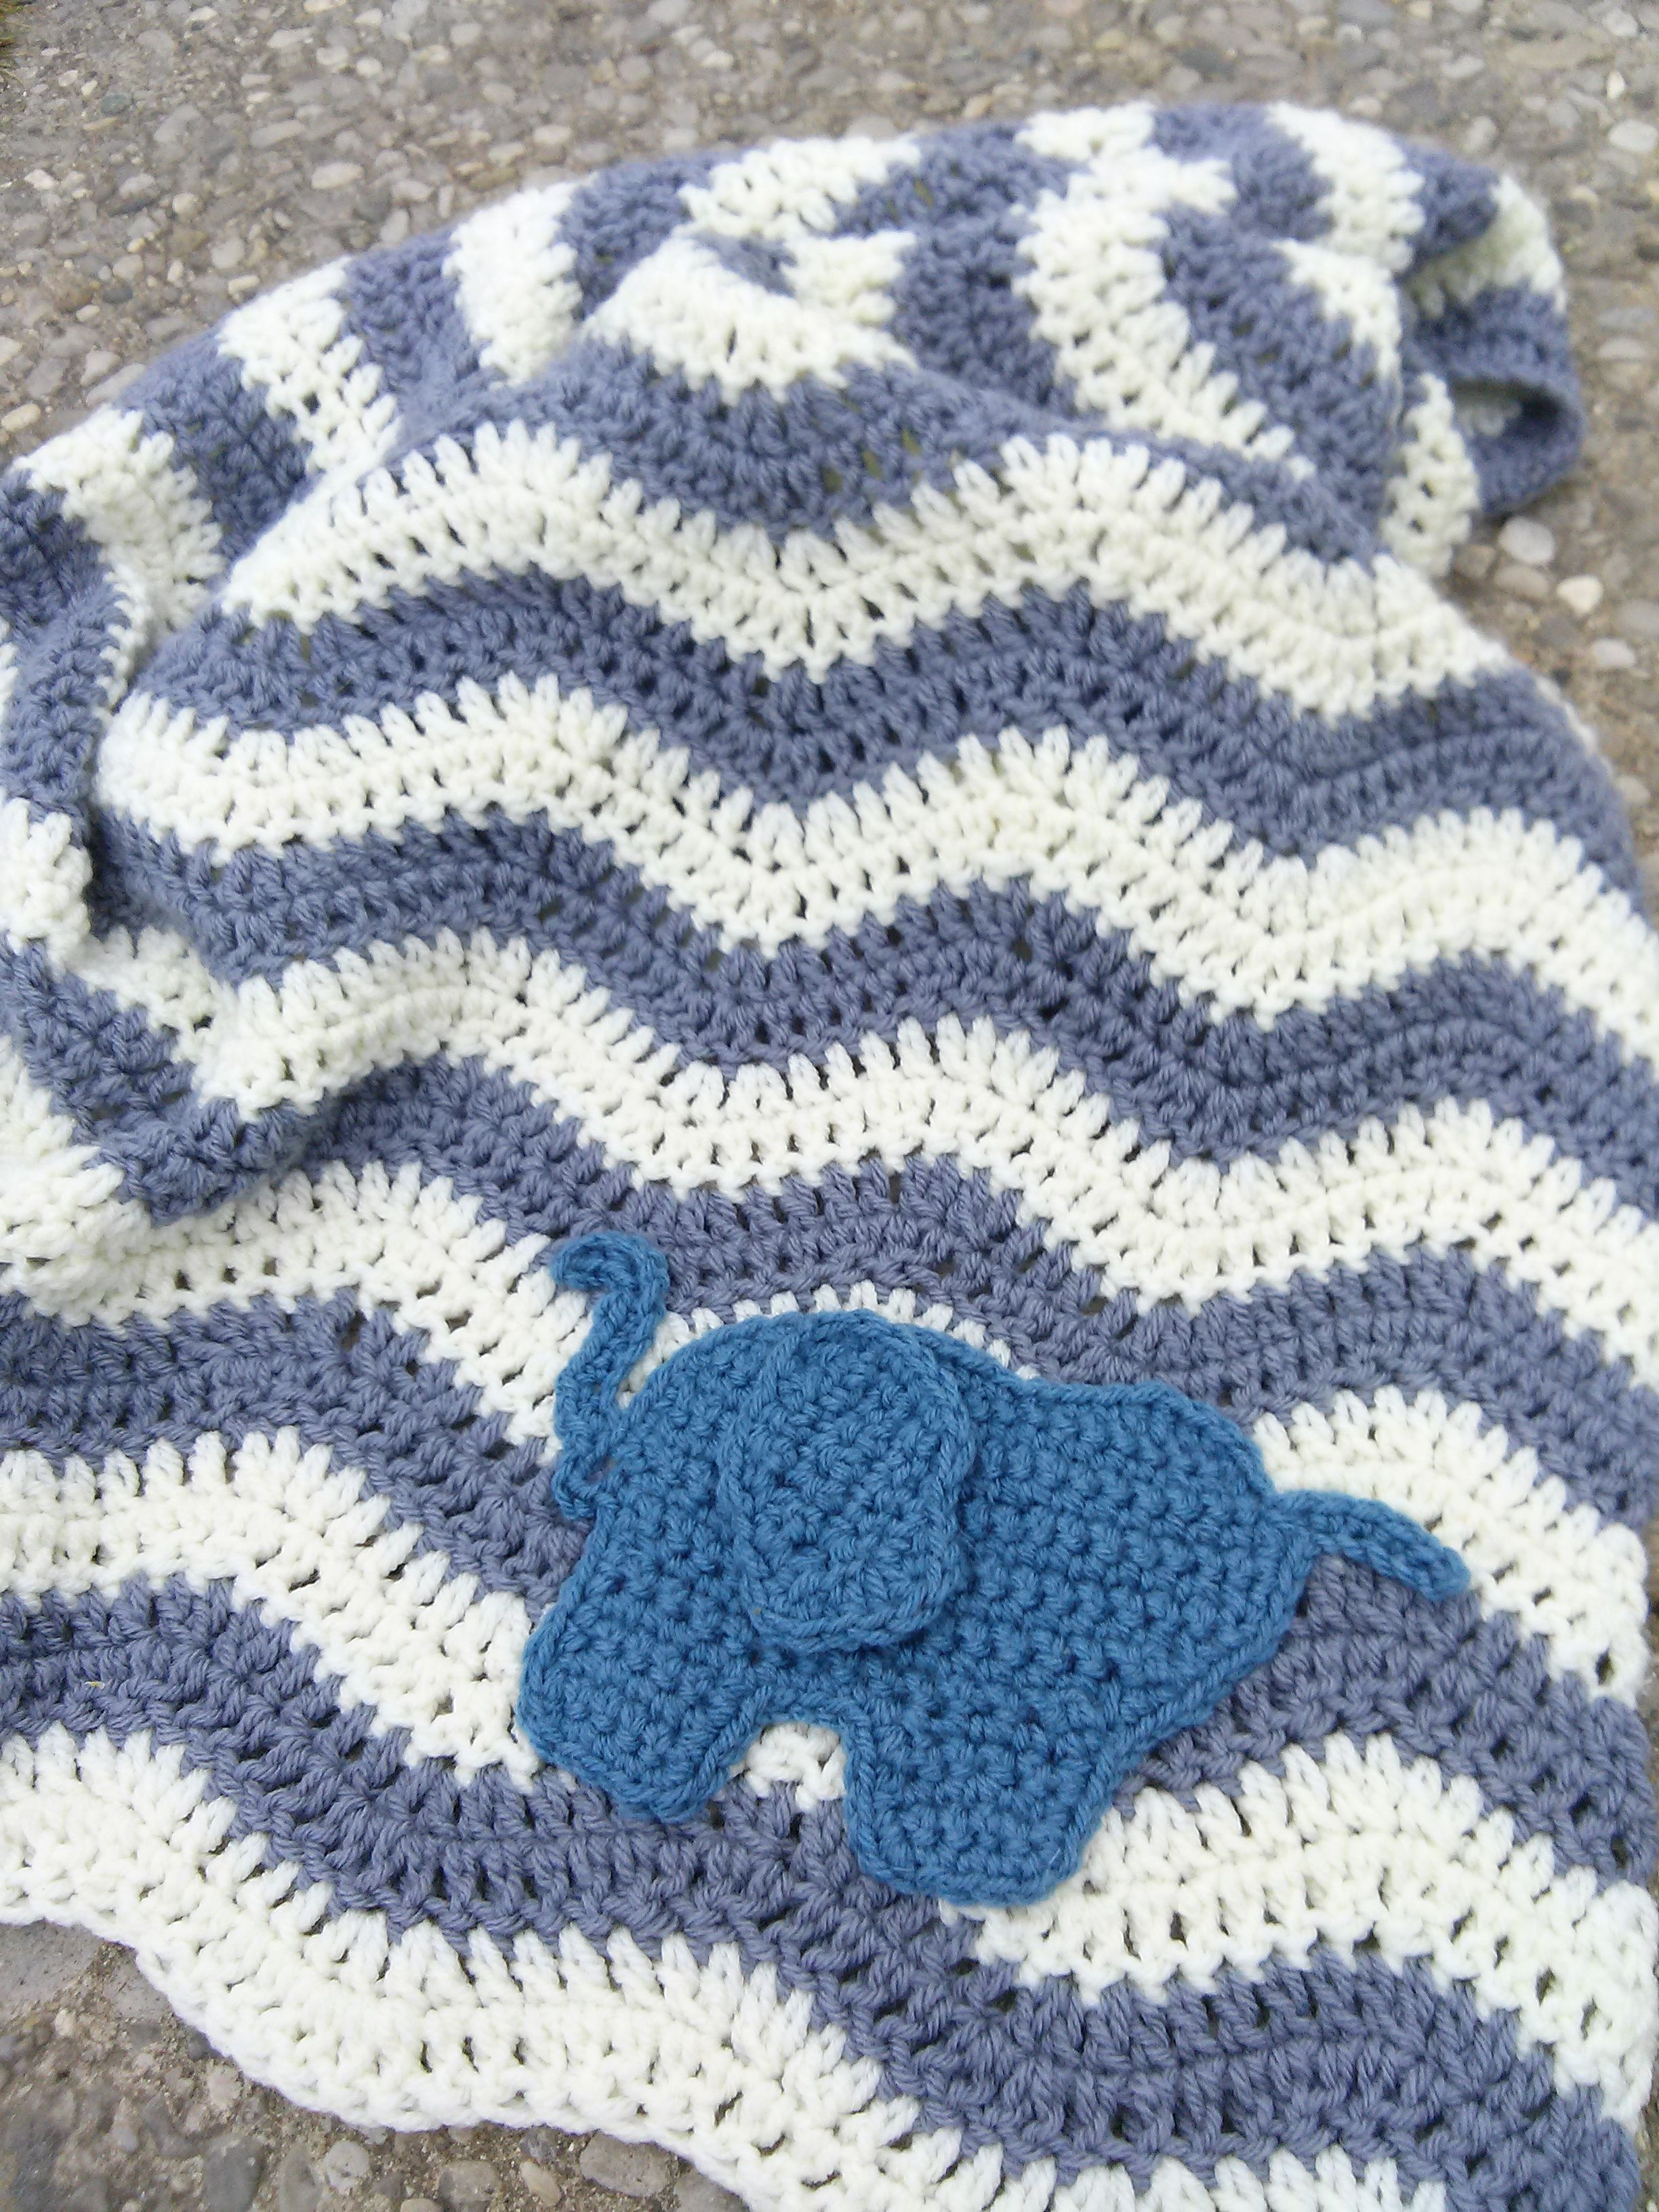 Crochet grey and white ripple chevron baby blanket with elephant ...